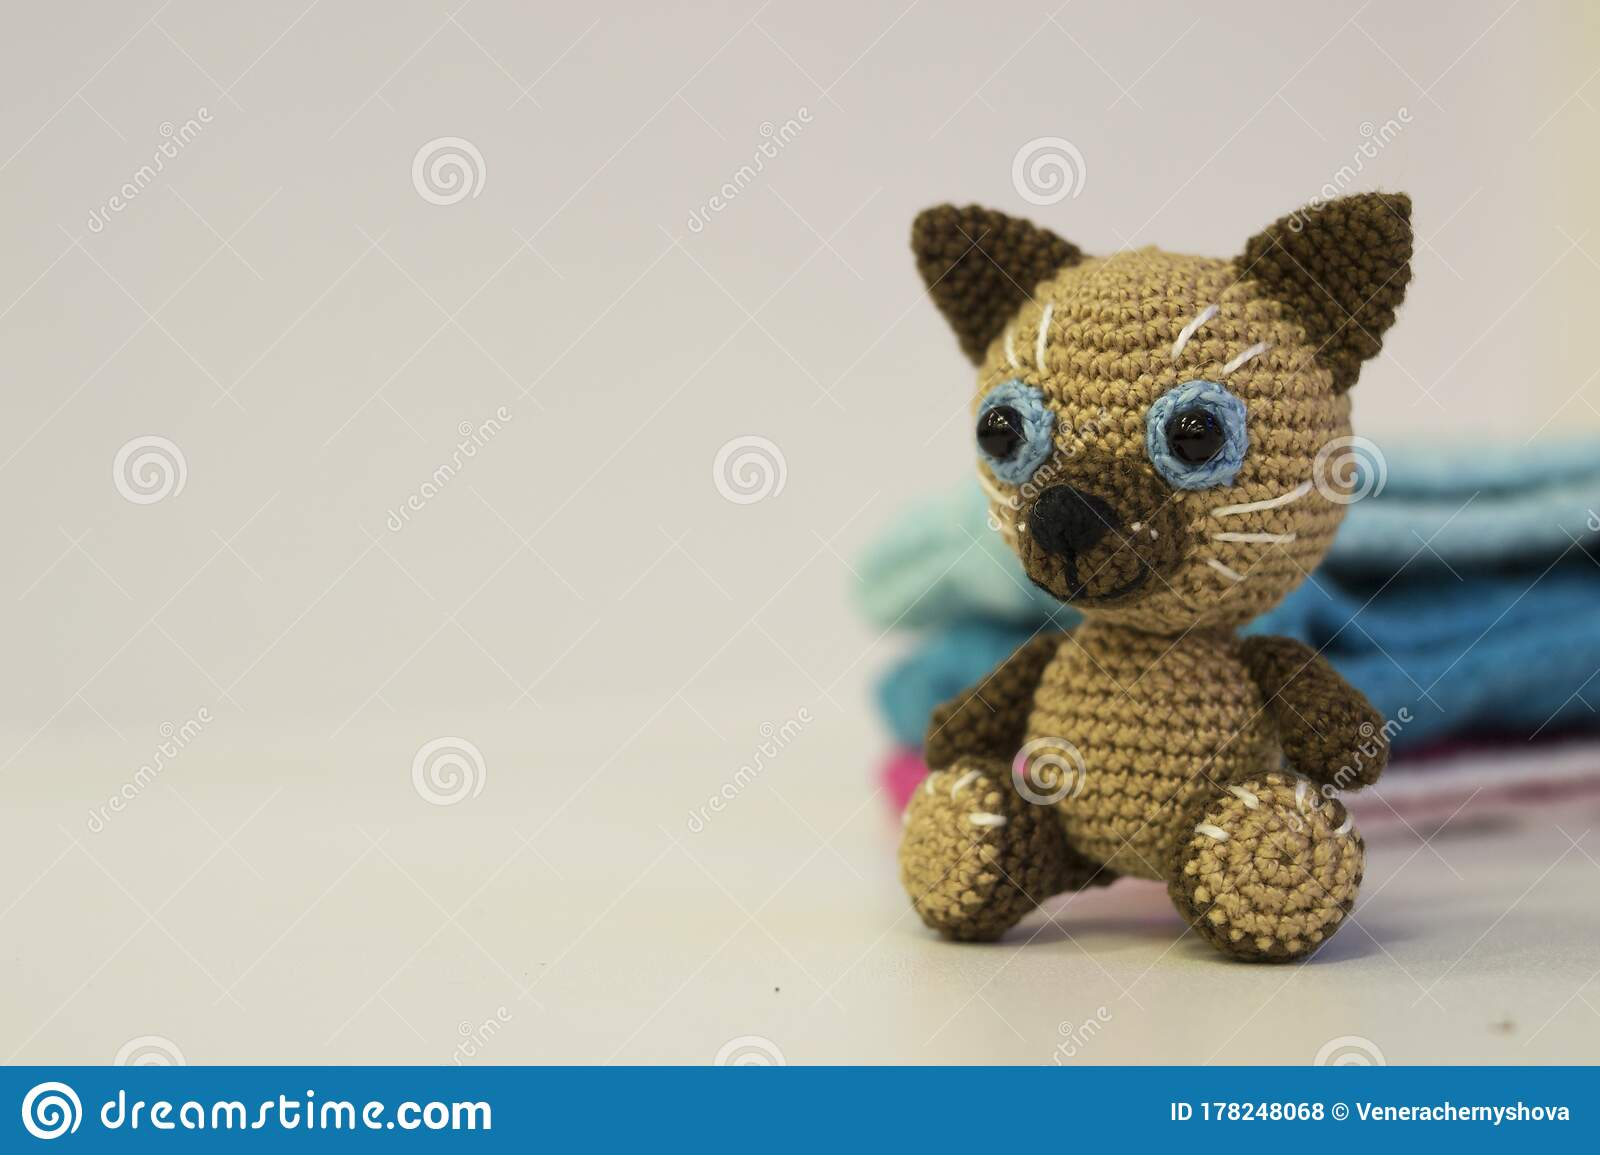 Crochet Pattern Black and White Cat by Meely. | Crochet patterns ... | 1155x1600